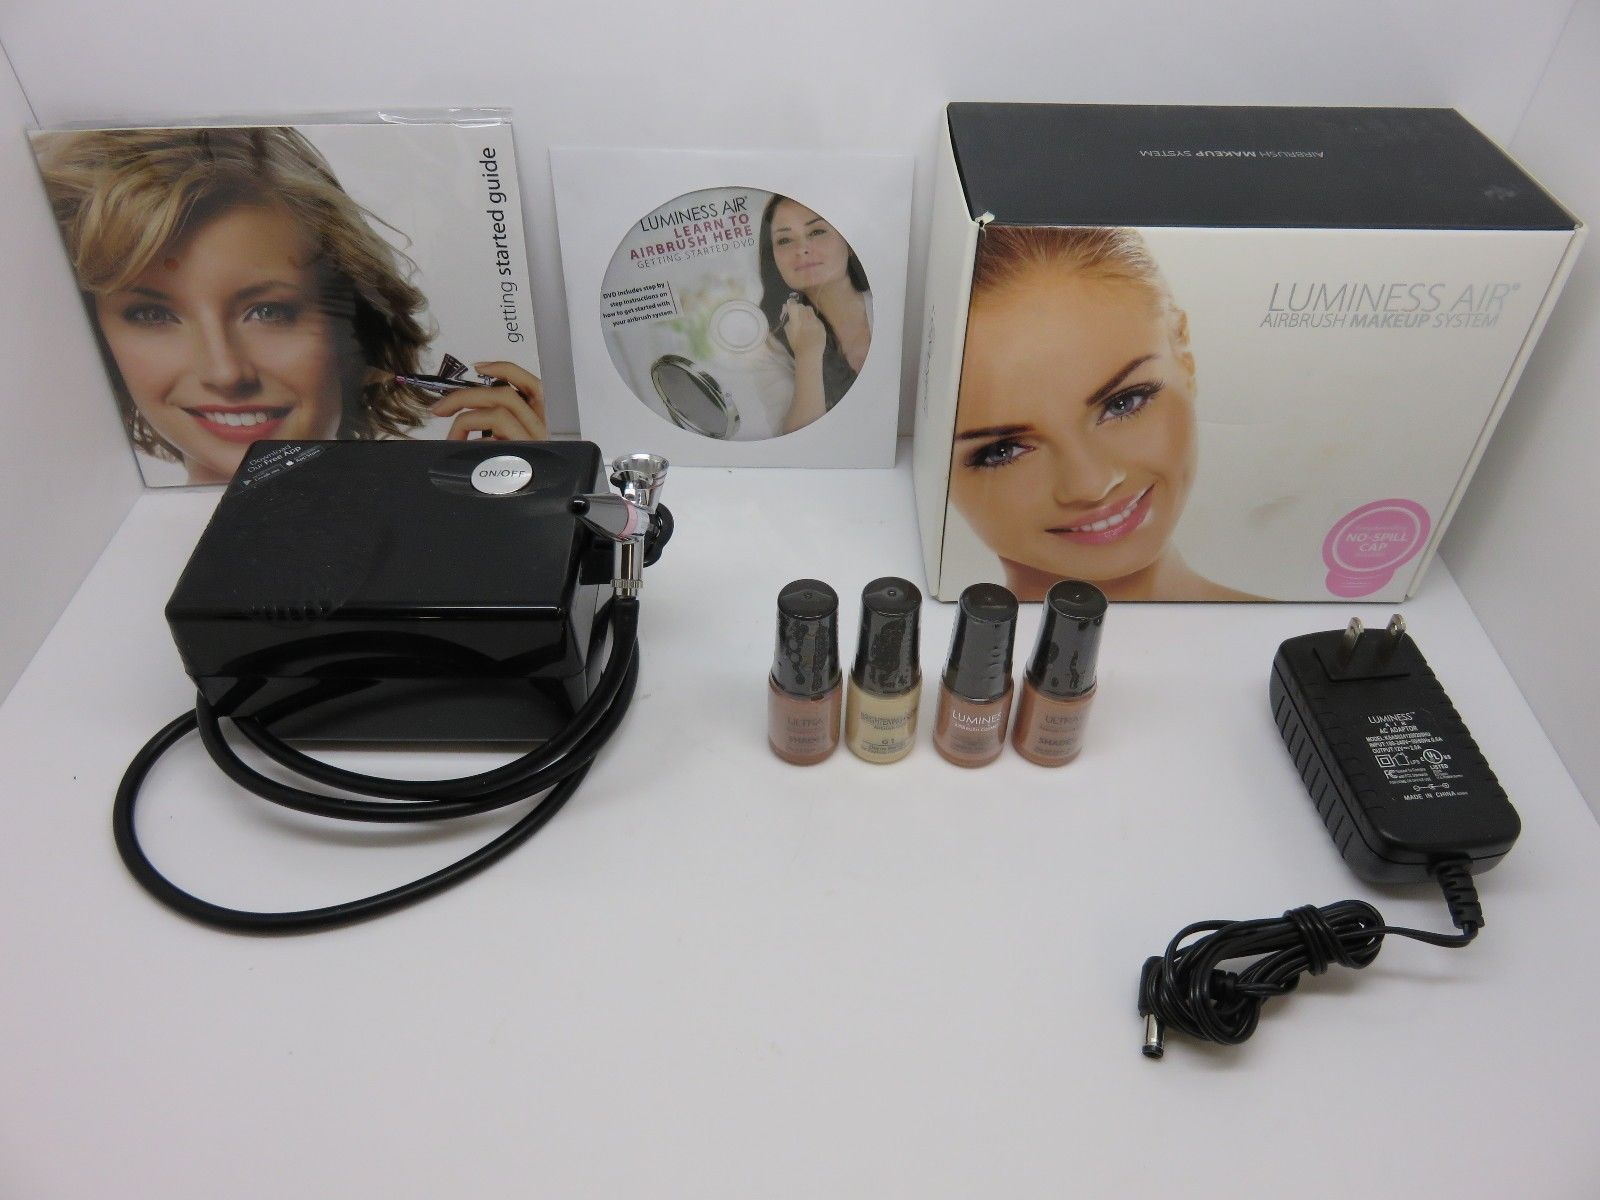 Luminess Air Airbrush Makeup System with SOME Makeup